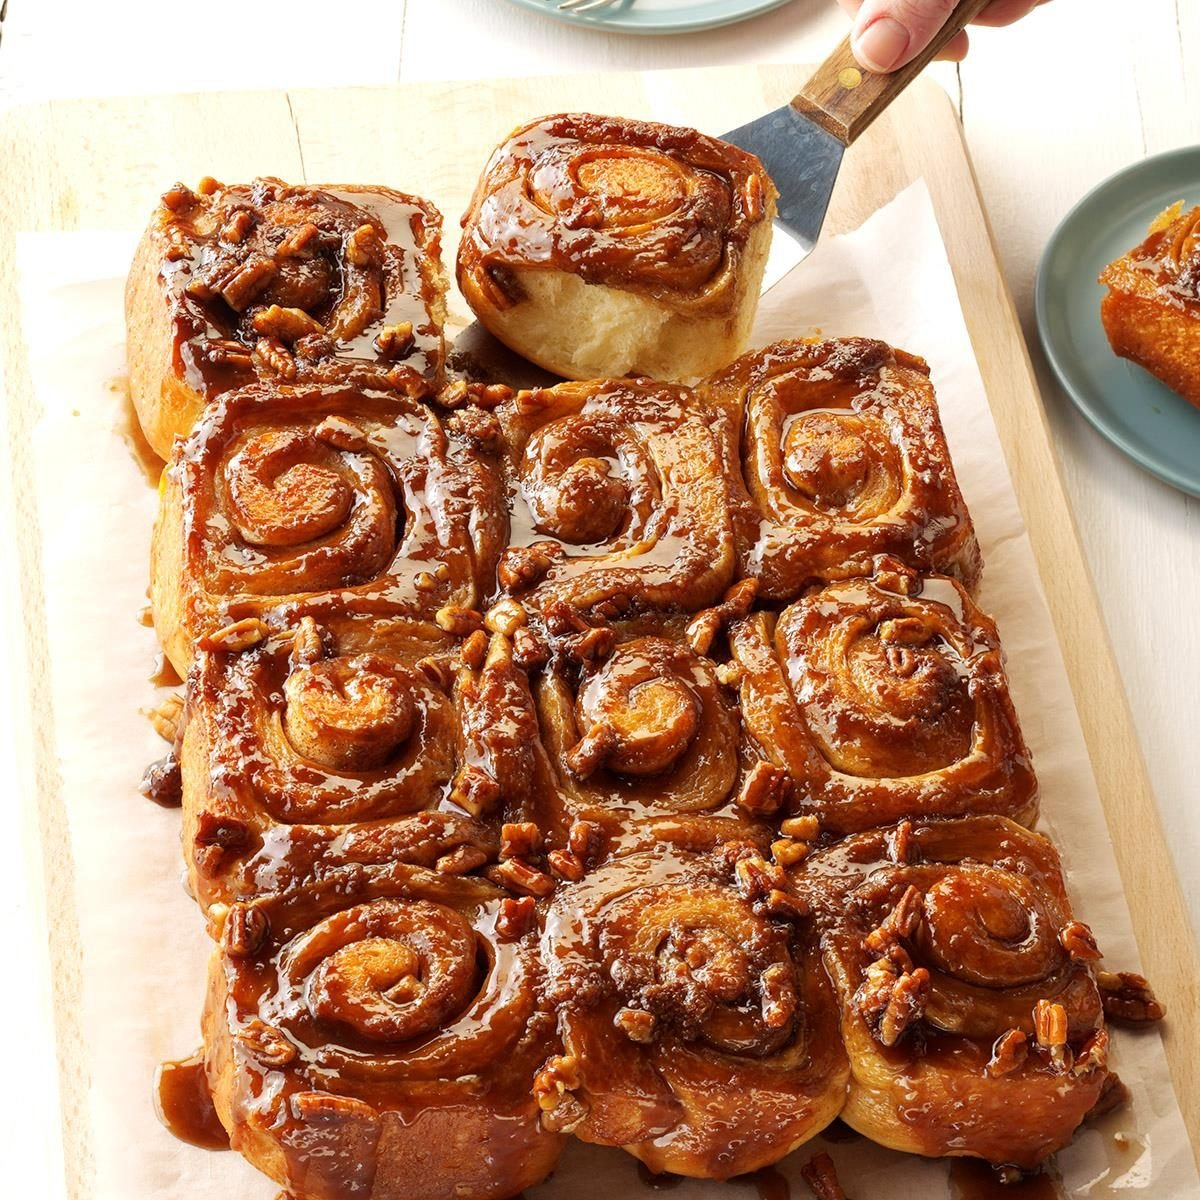 Inspired by: Pecan Roll